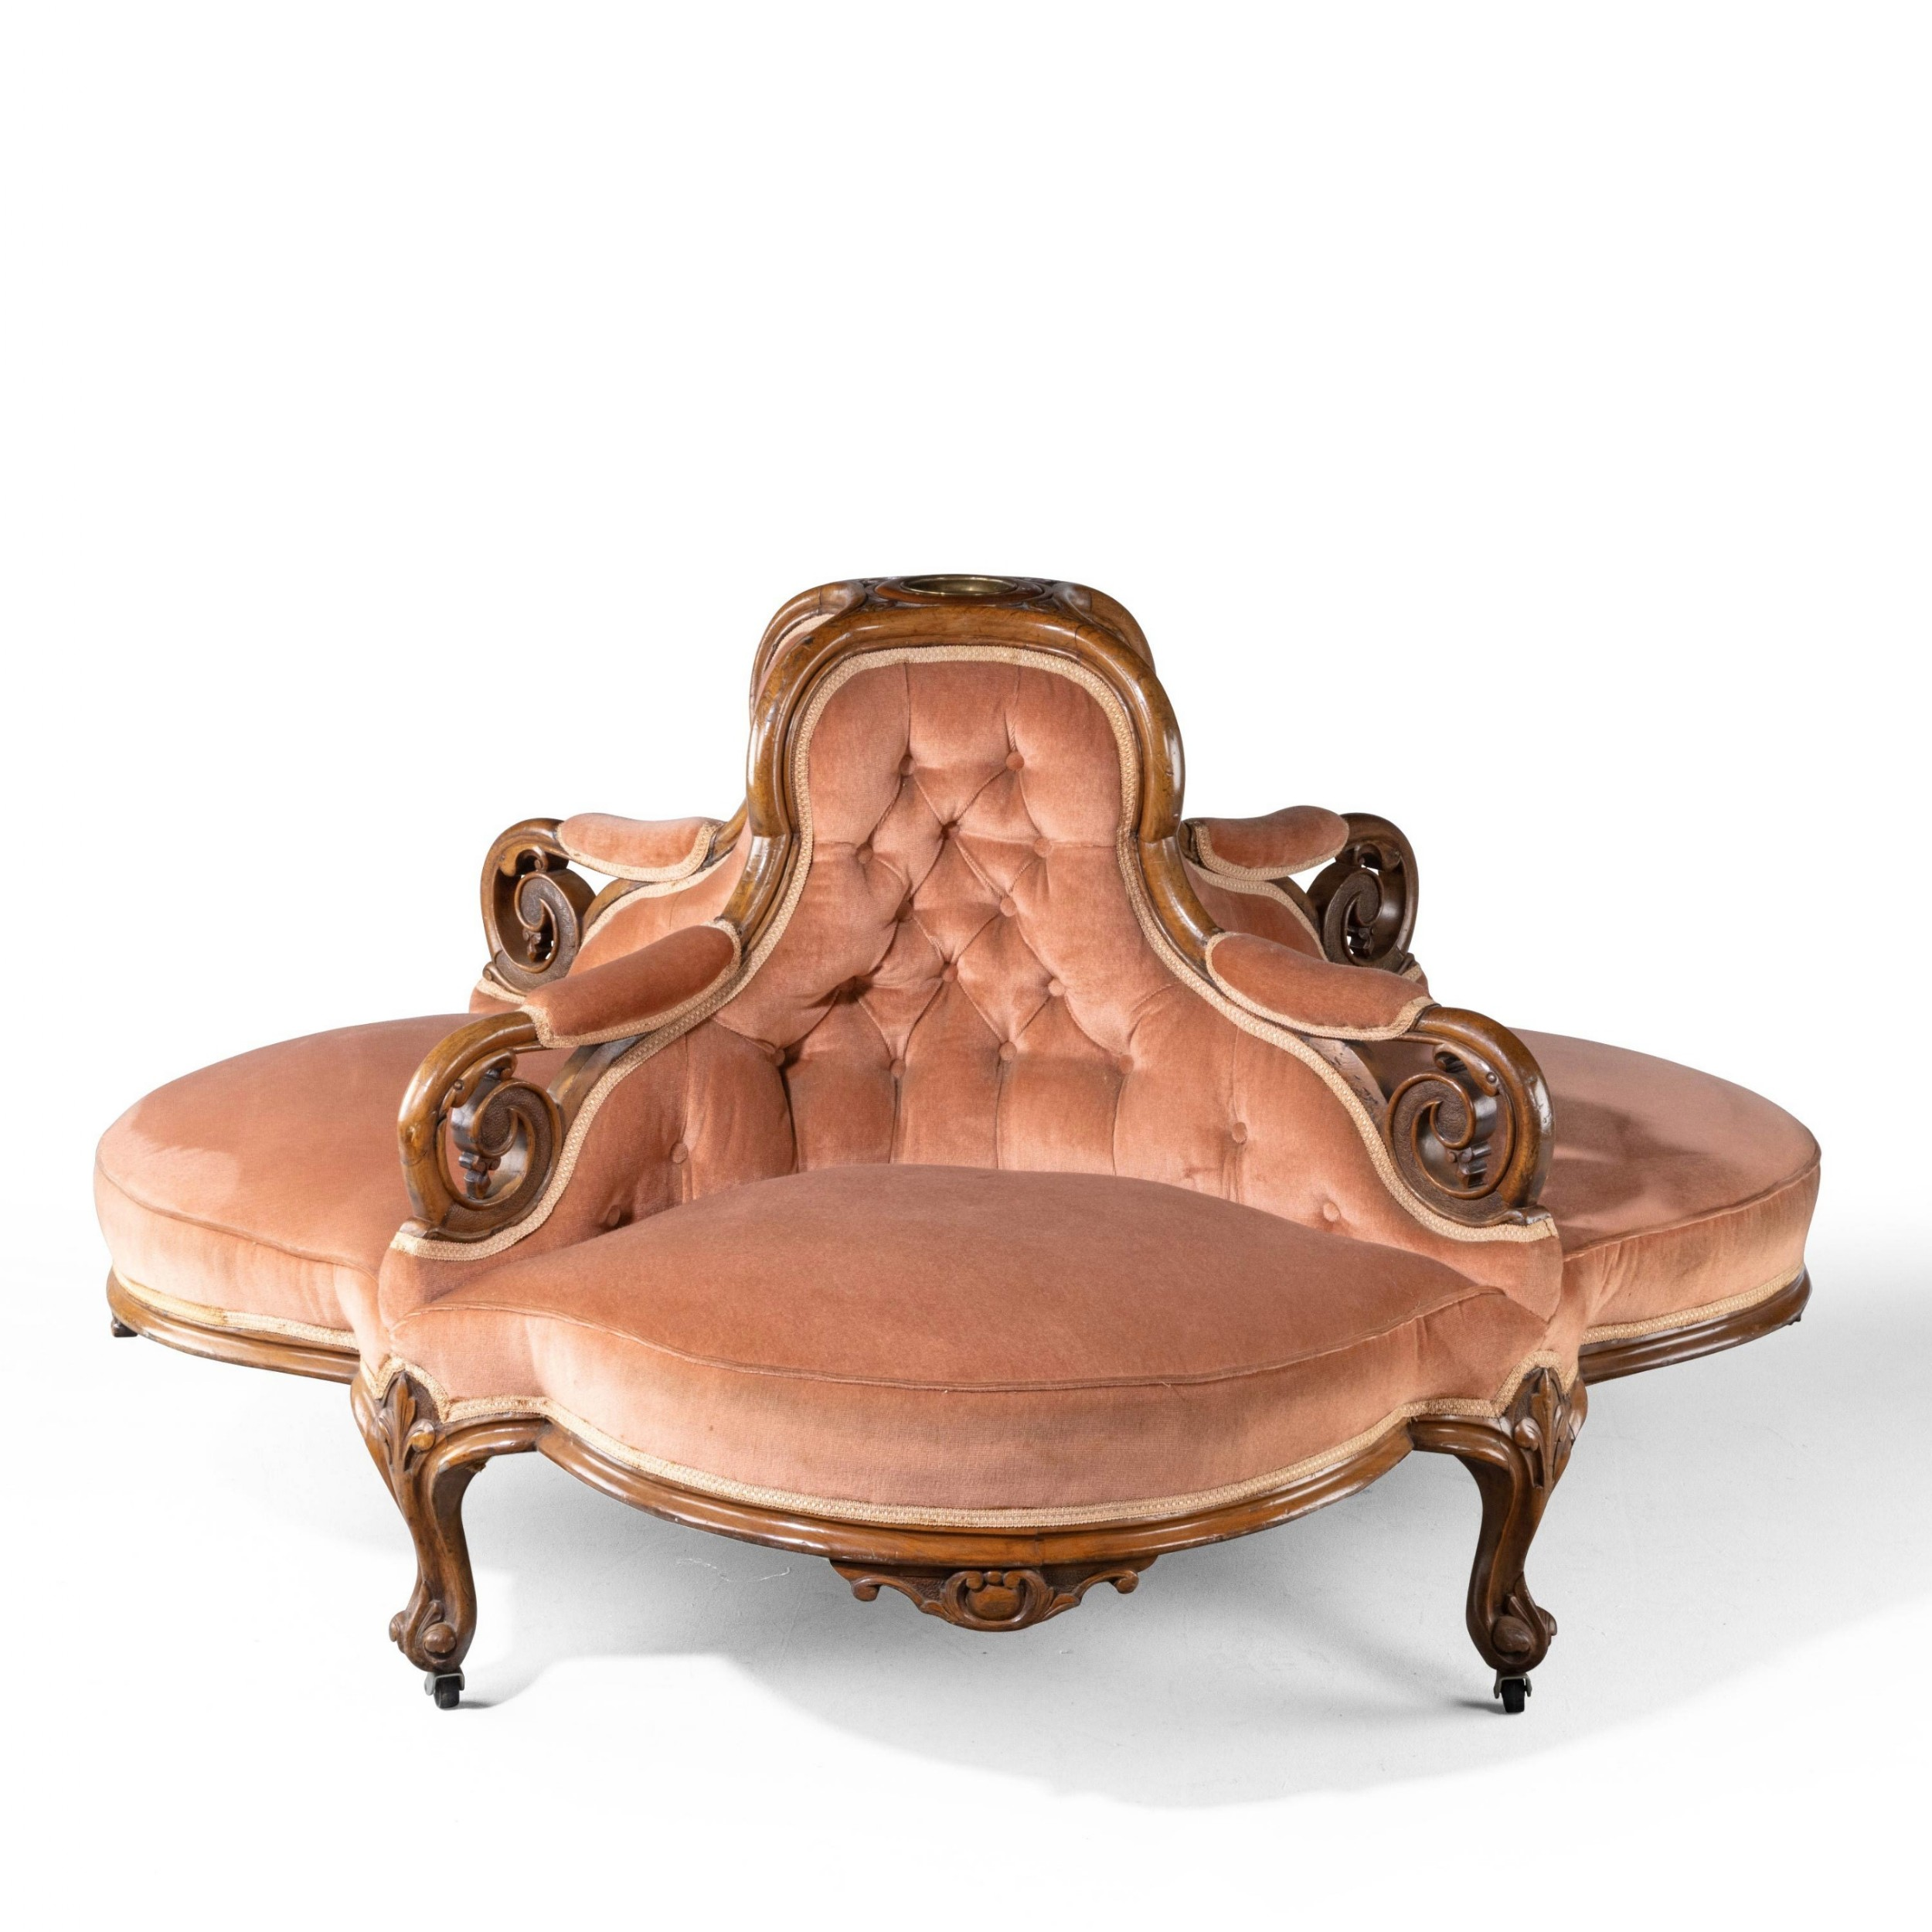 a very shapely late 19th century french conversation seat